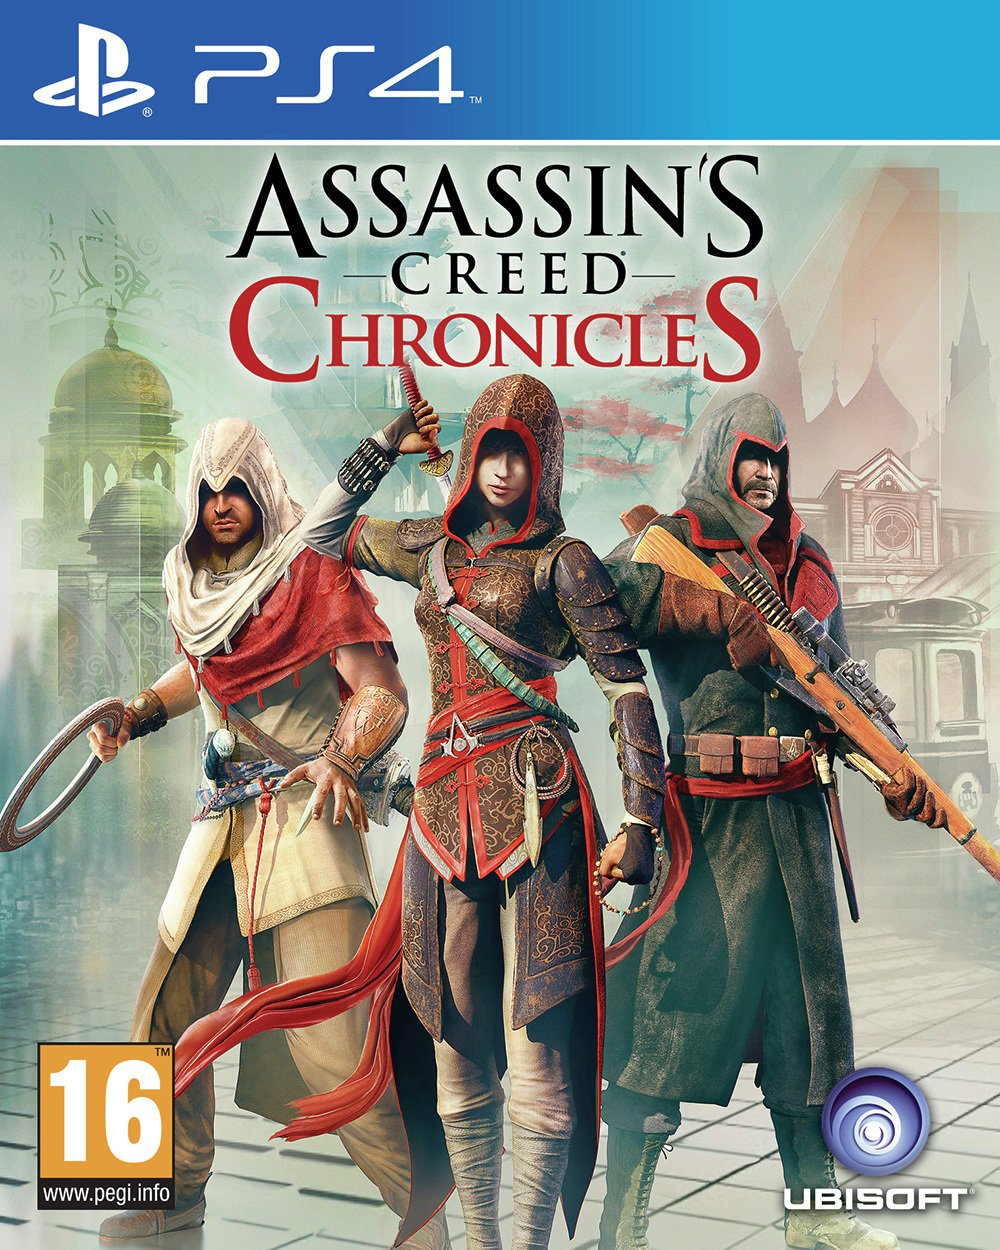 Image of Assassin's Creed - Chronicles - PS4 Game.